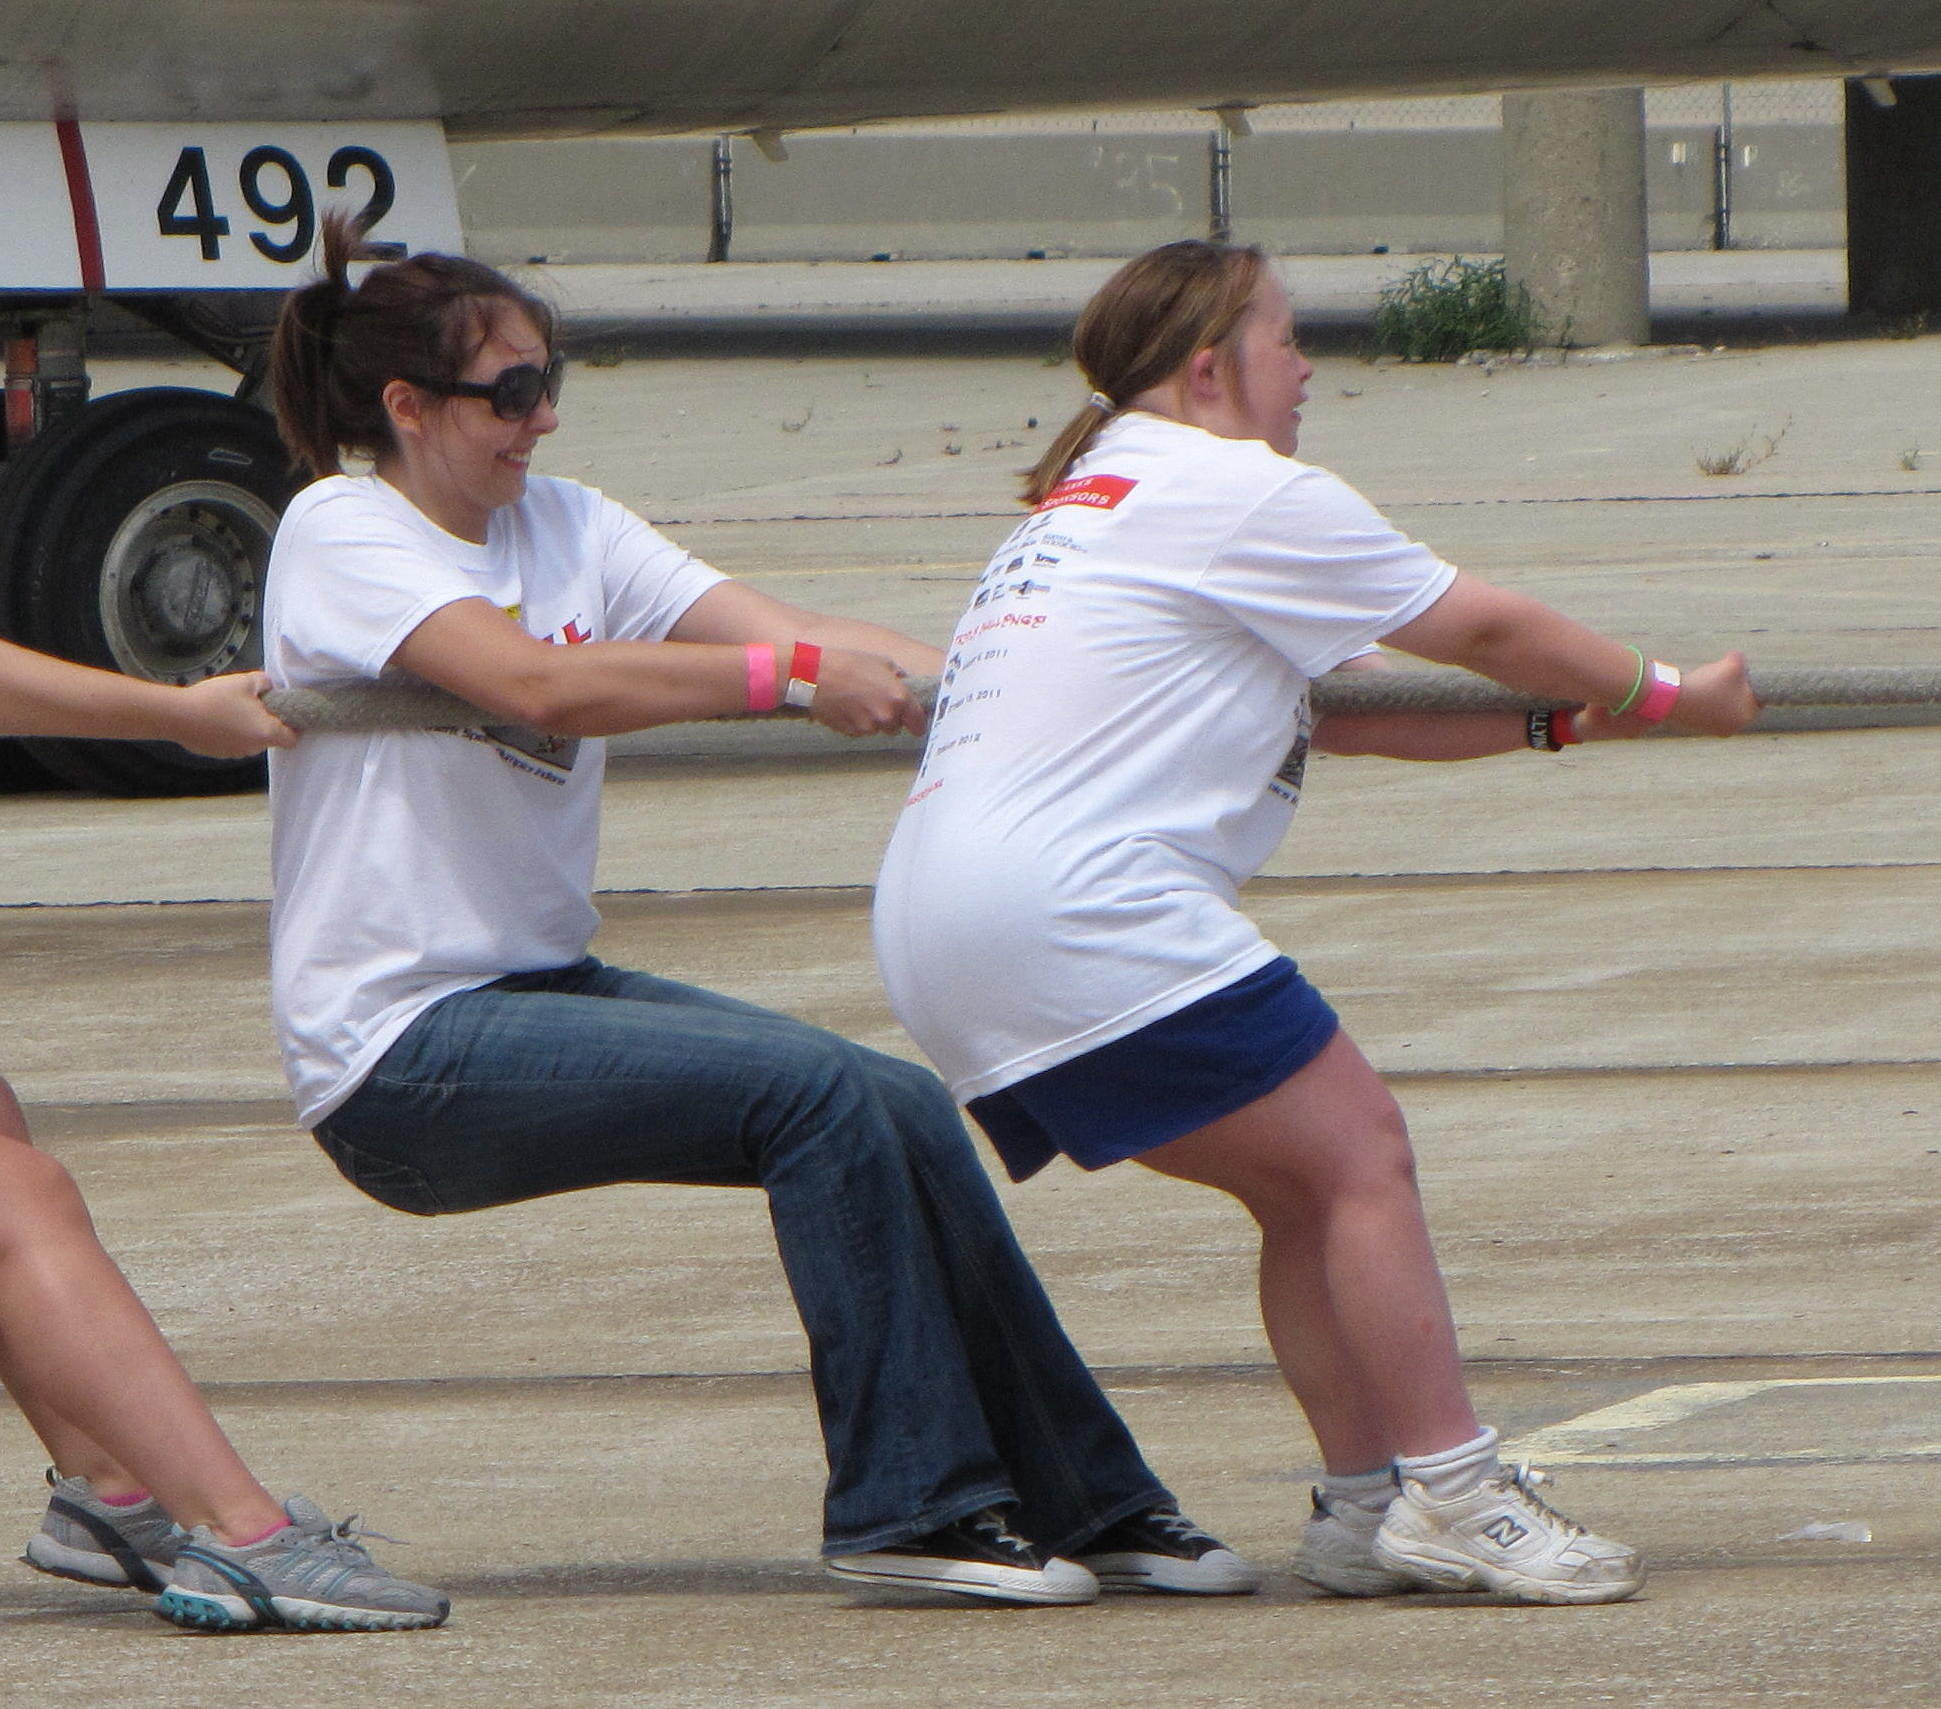 Challengers pull a FedEx plane during last year's event. (Submitted photo)